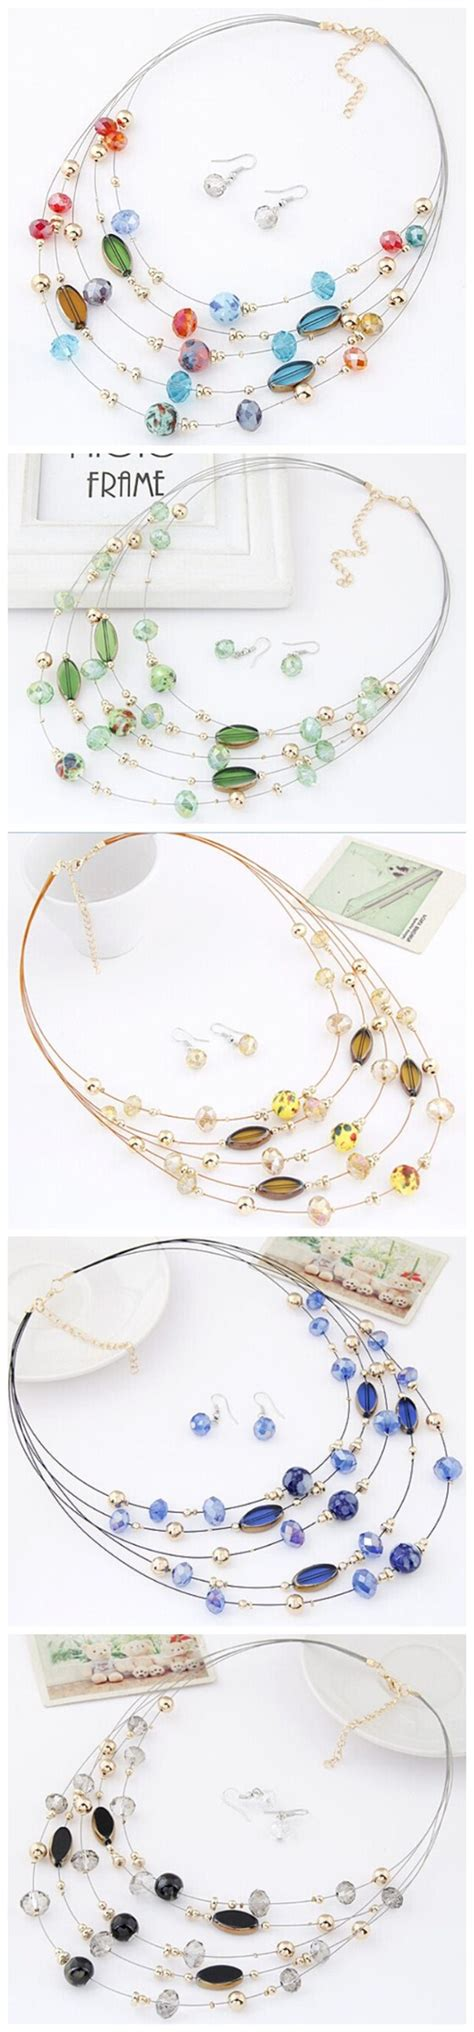 Set Kalung Anting Korean Fashion Multilayer Design Studs Earring Necklace Jewelry Set Green korean style multi layer costume necklace and earrings set chagne